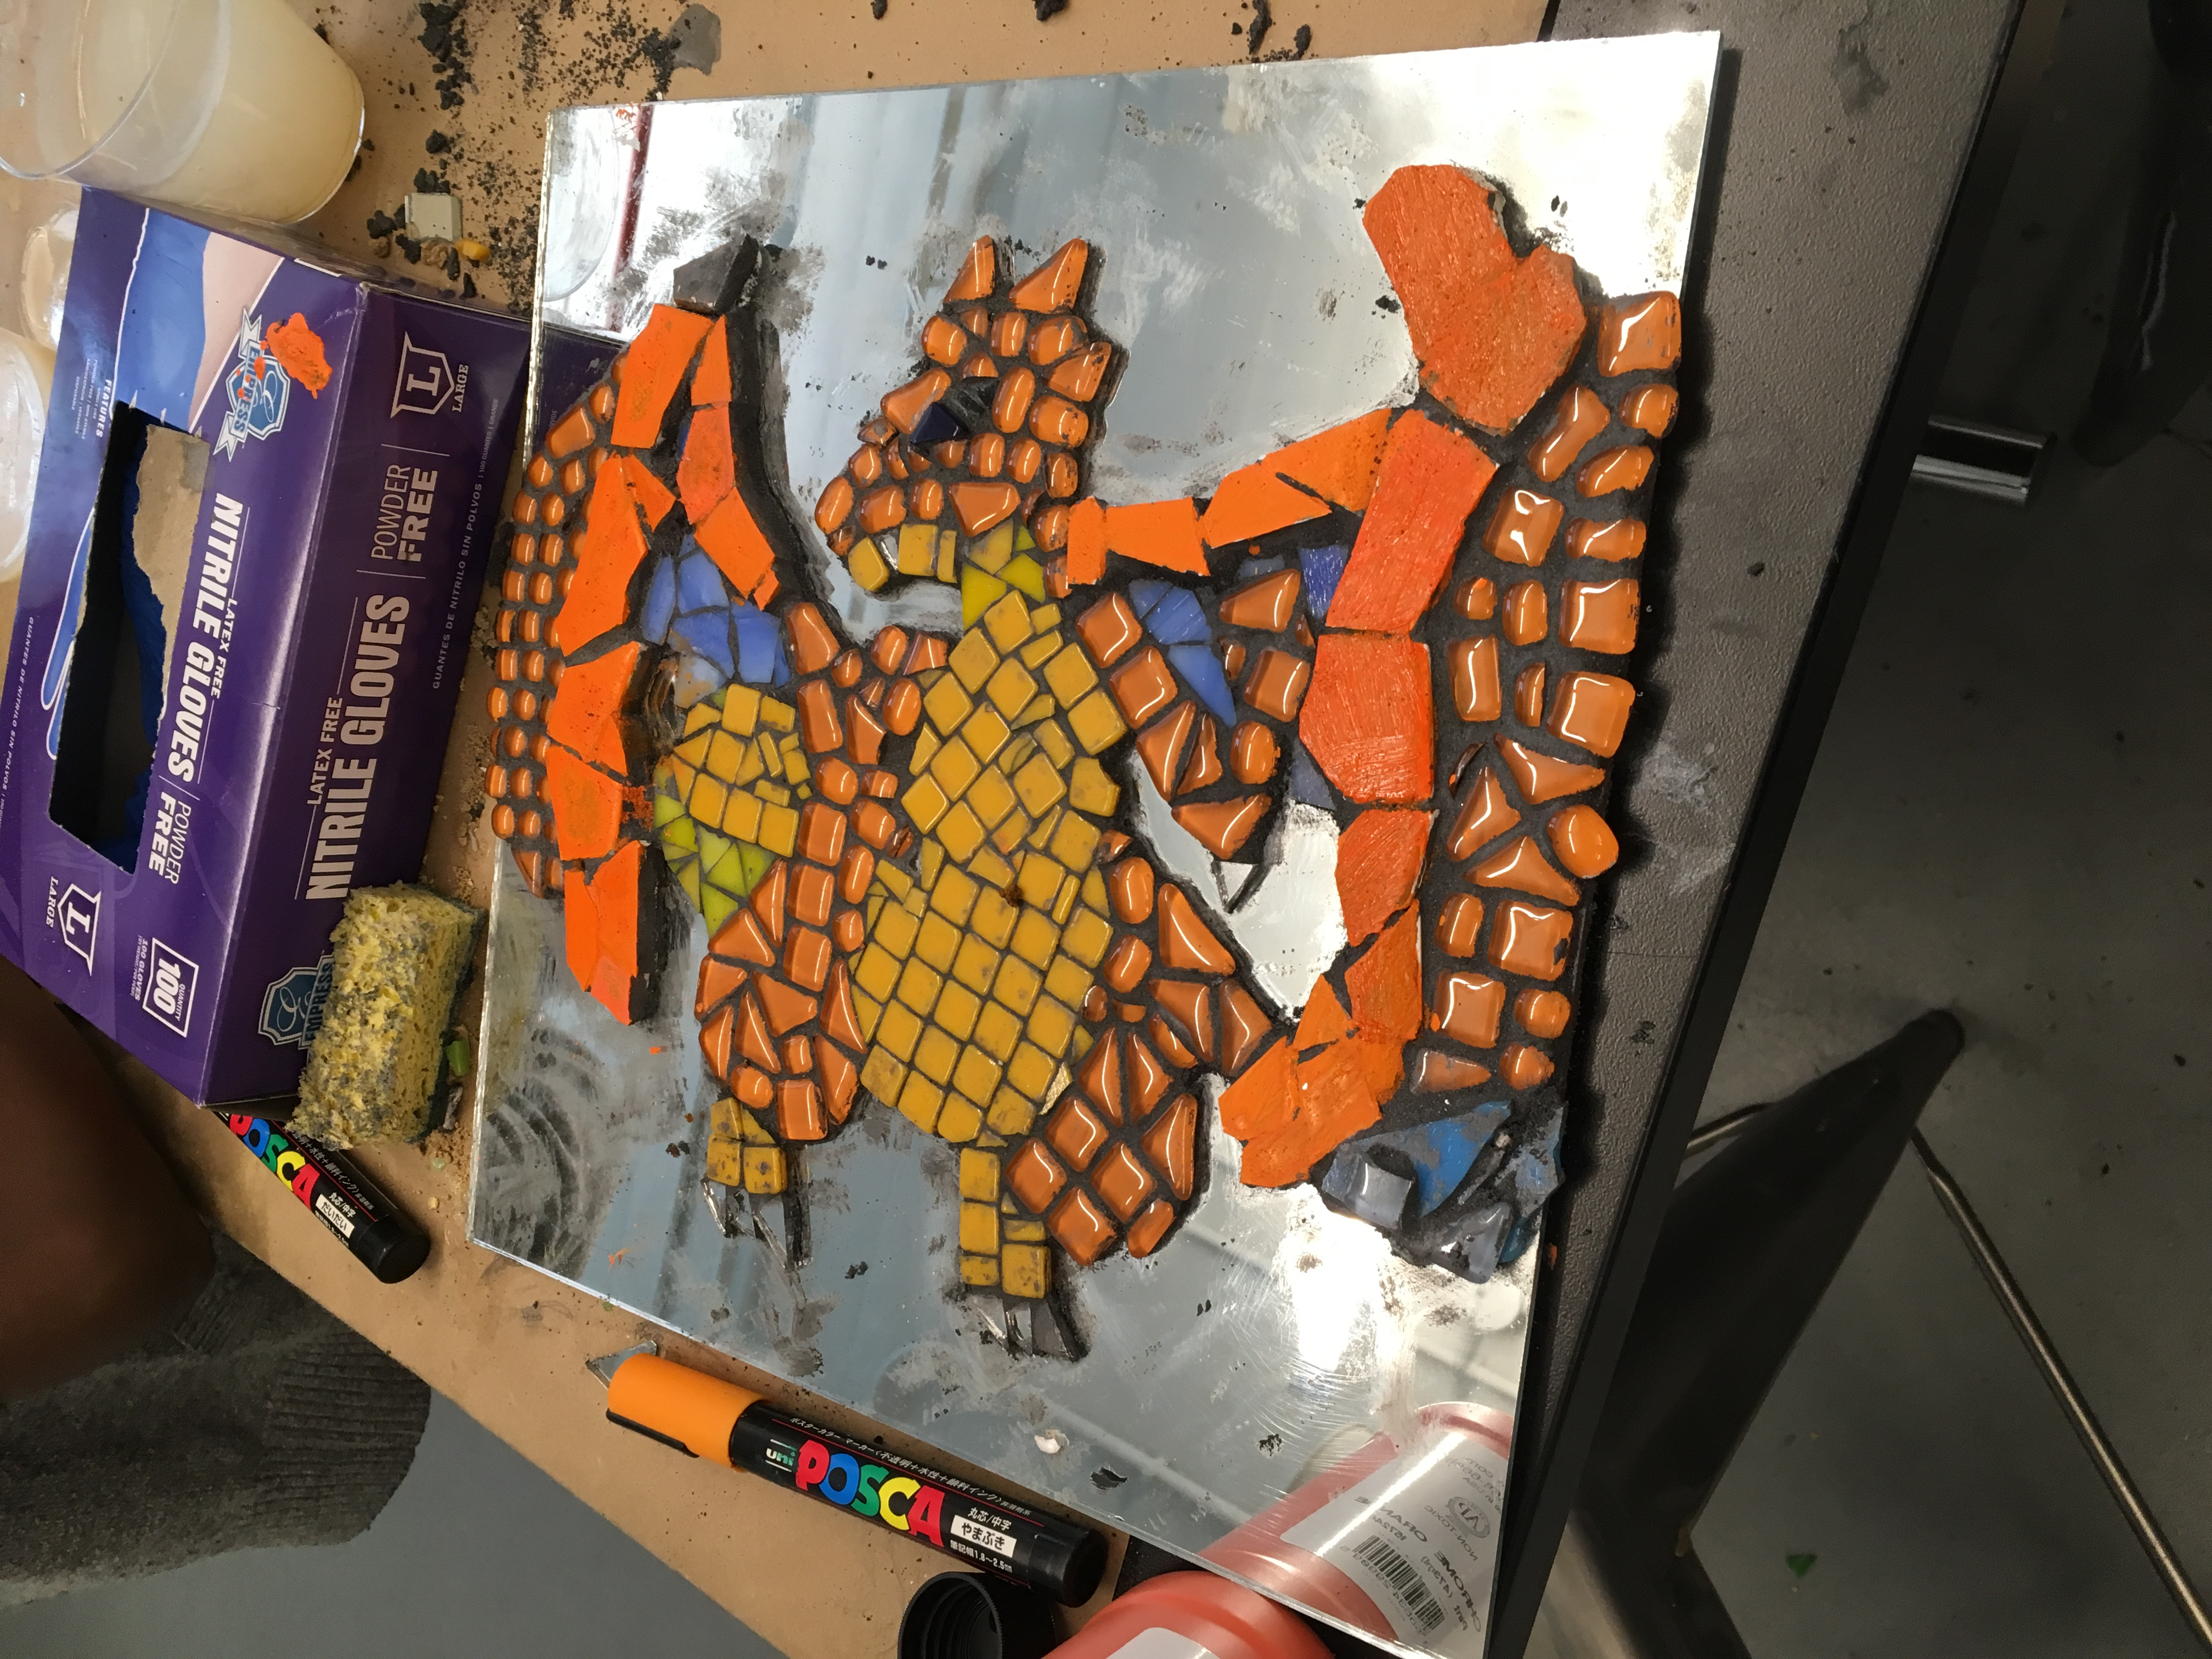 A mosaic in progress